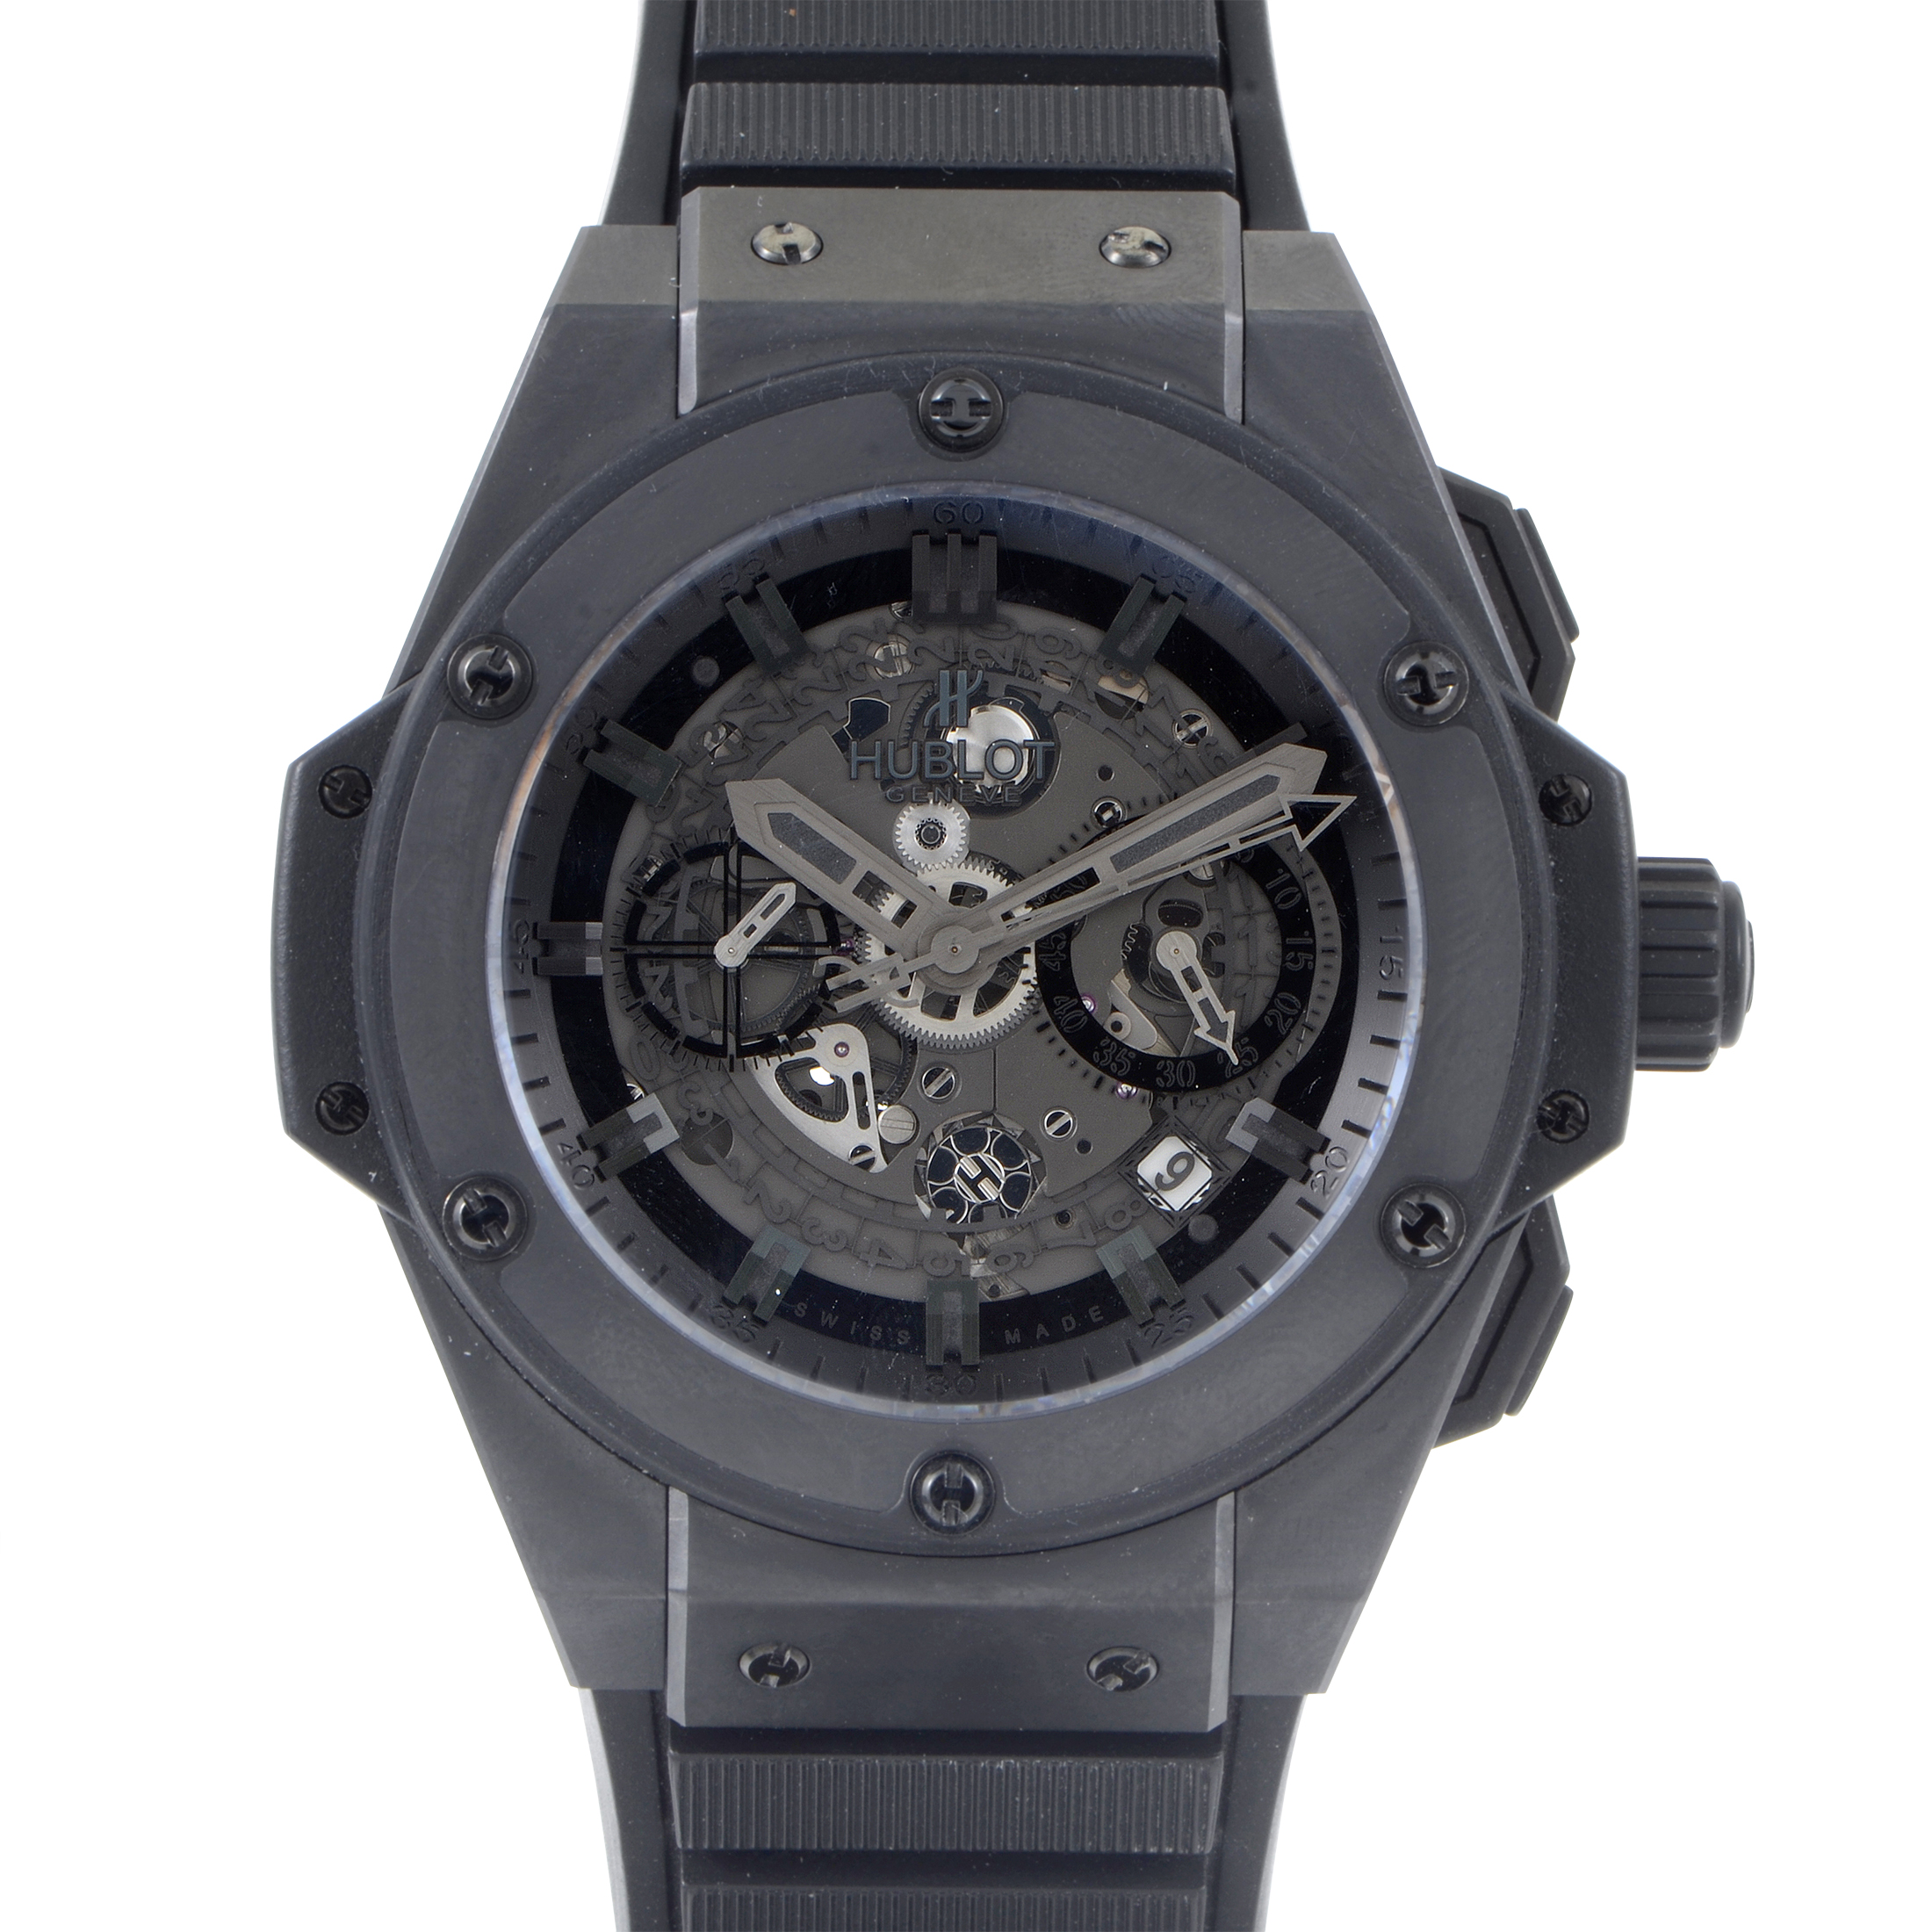 Big Bang King Power Unico Chronograph Watch 701.CI.0110.RX